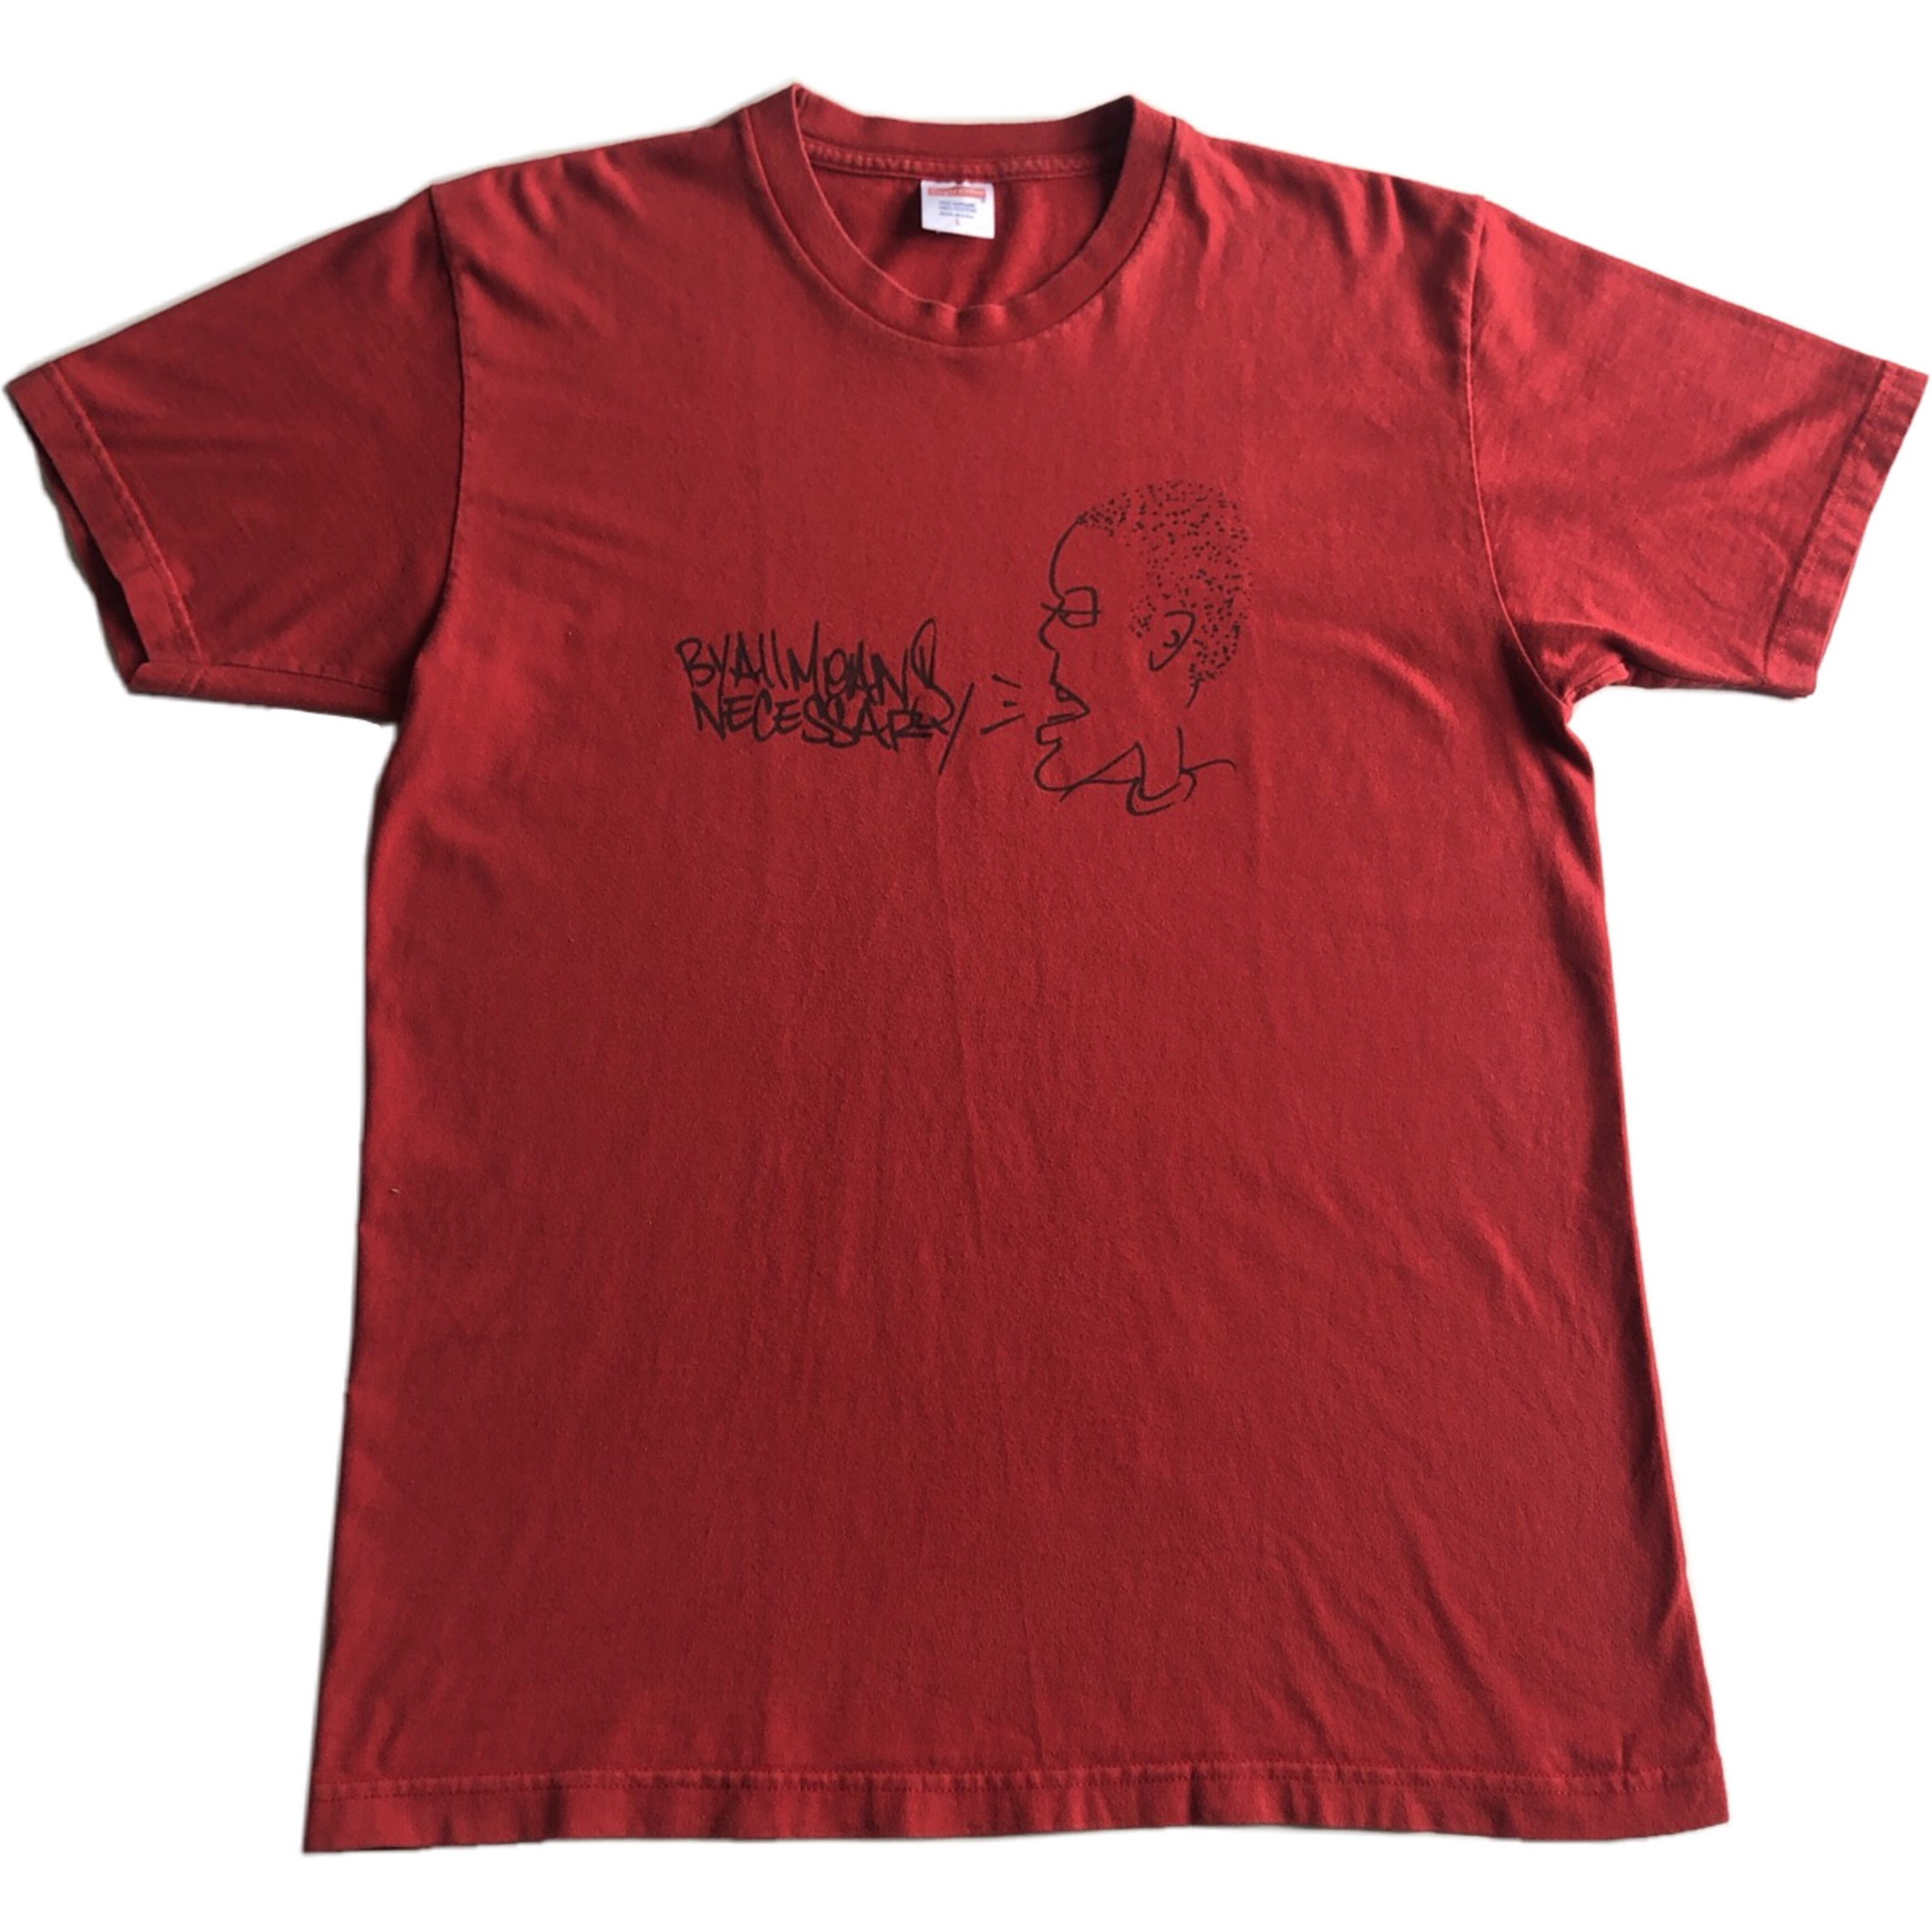 Supreme Krs One By All Means Necessary Bogo Tshirt